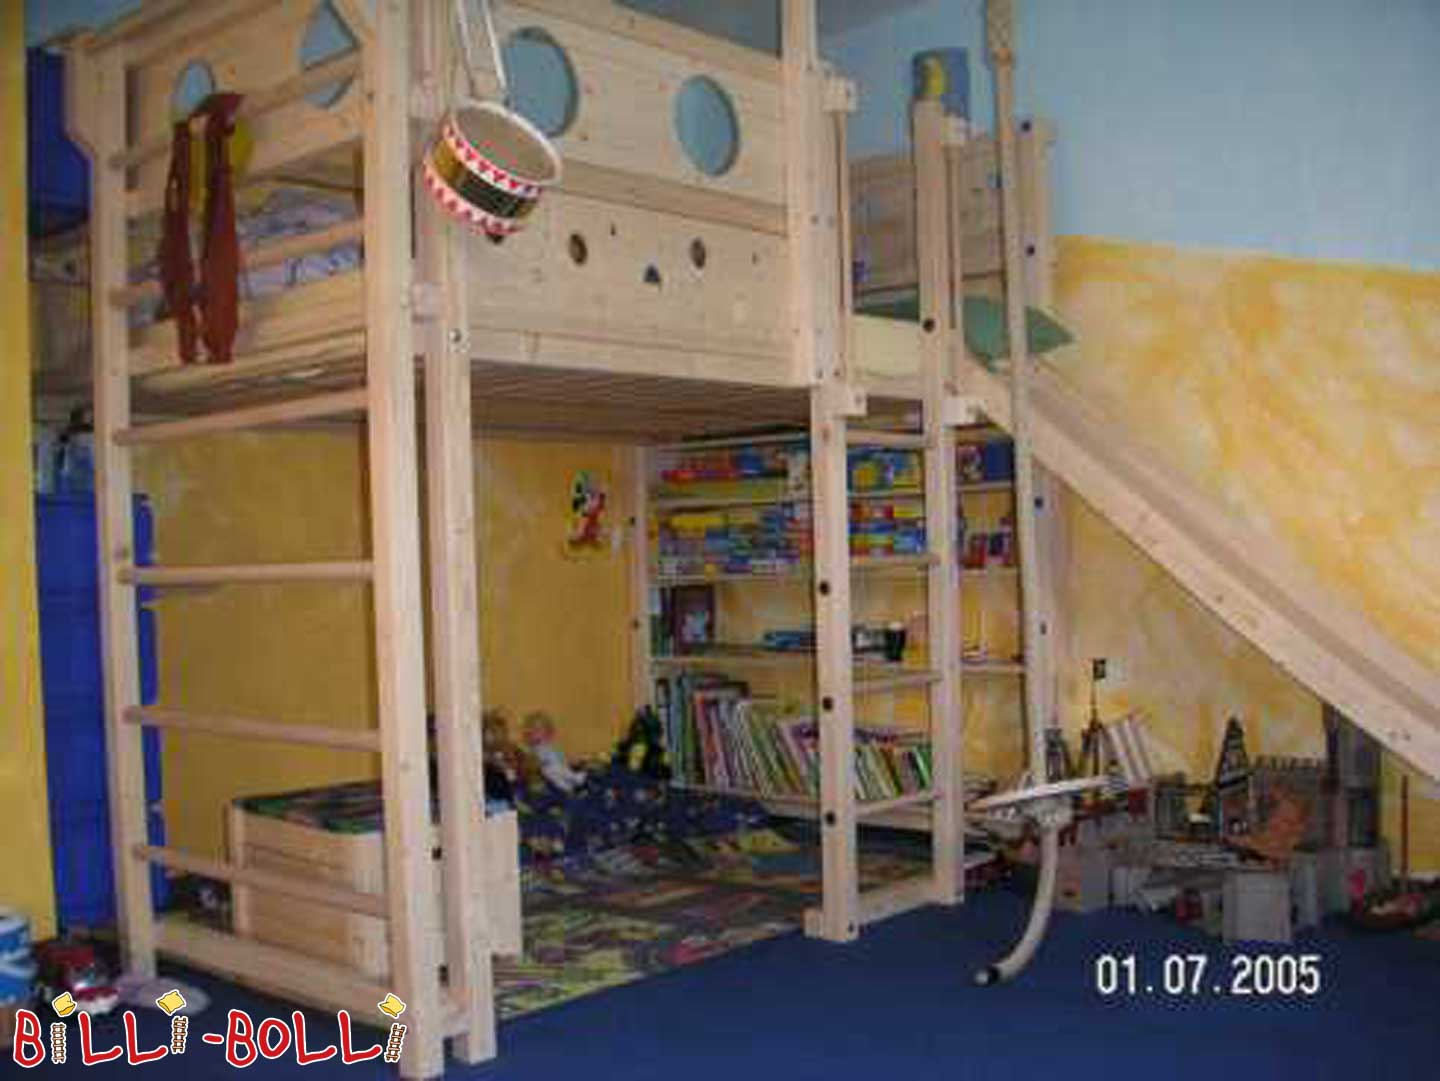 Billi-Bolli high pirate bed 140 x 200 cm (second hand loft bed)